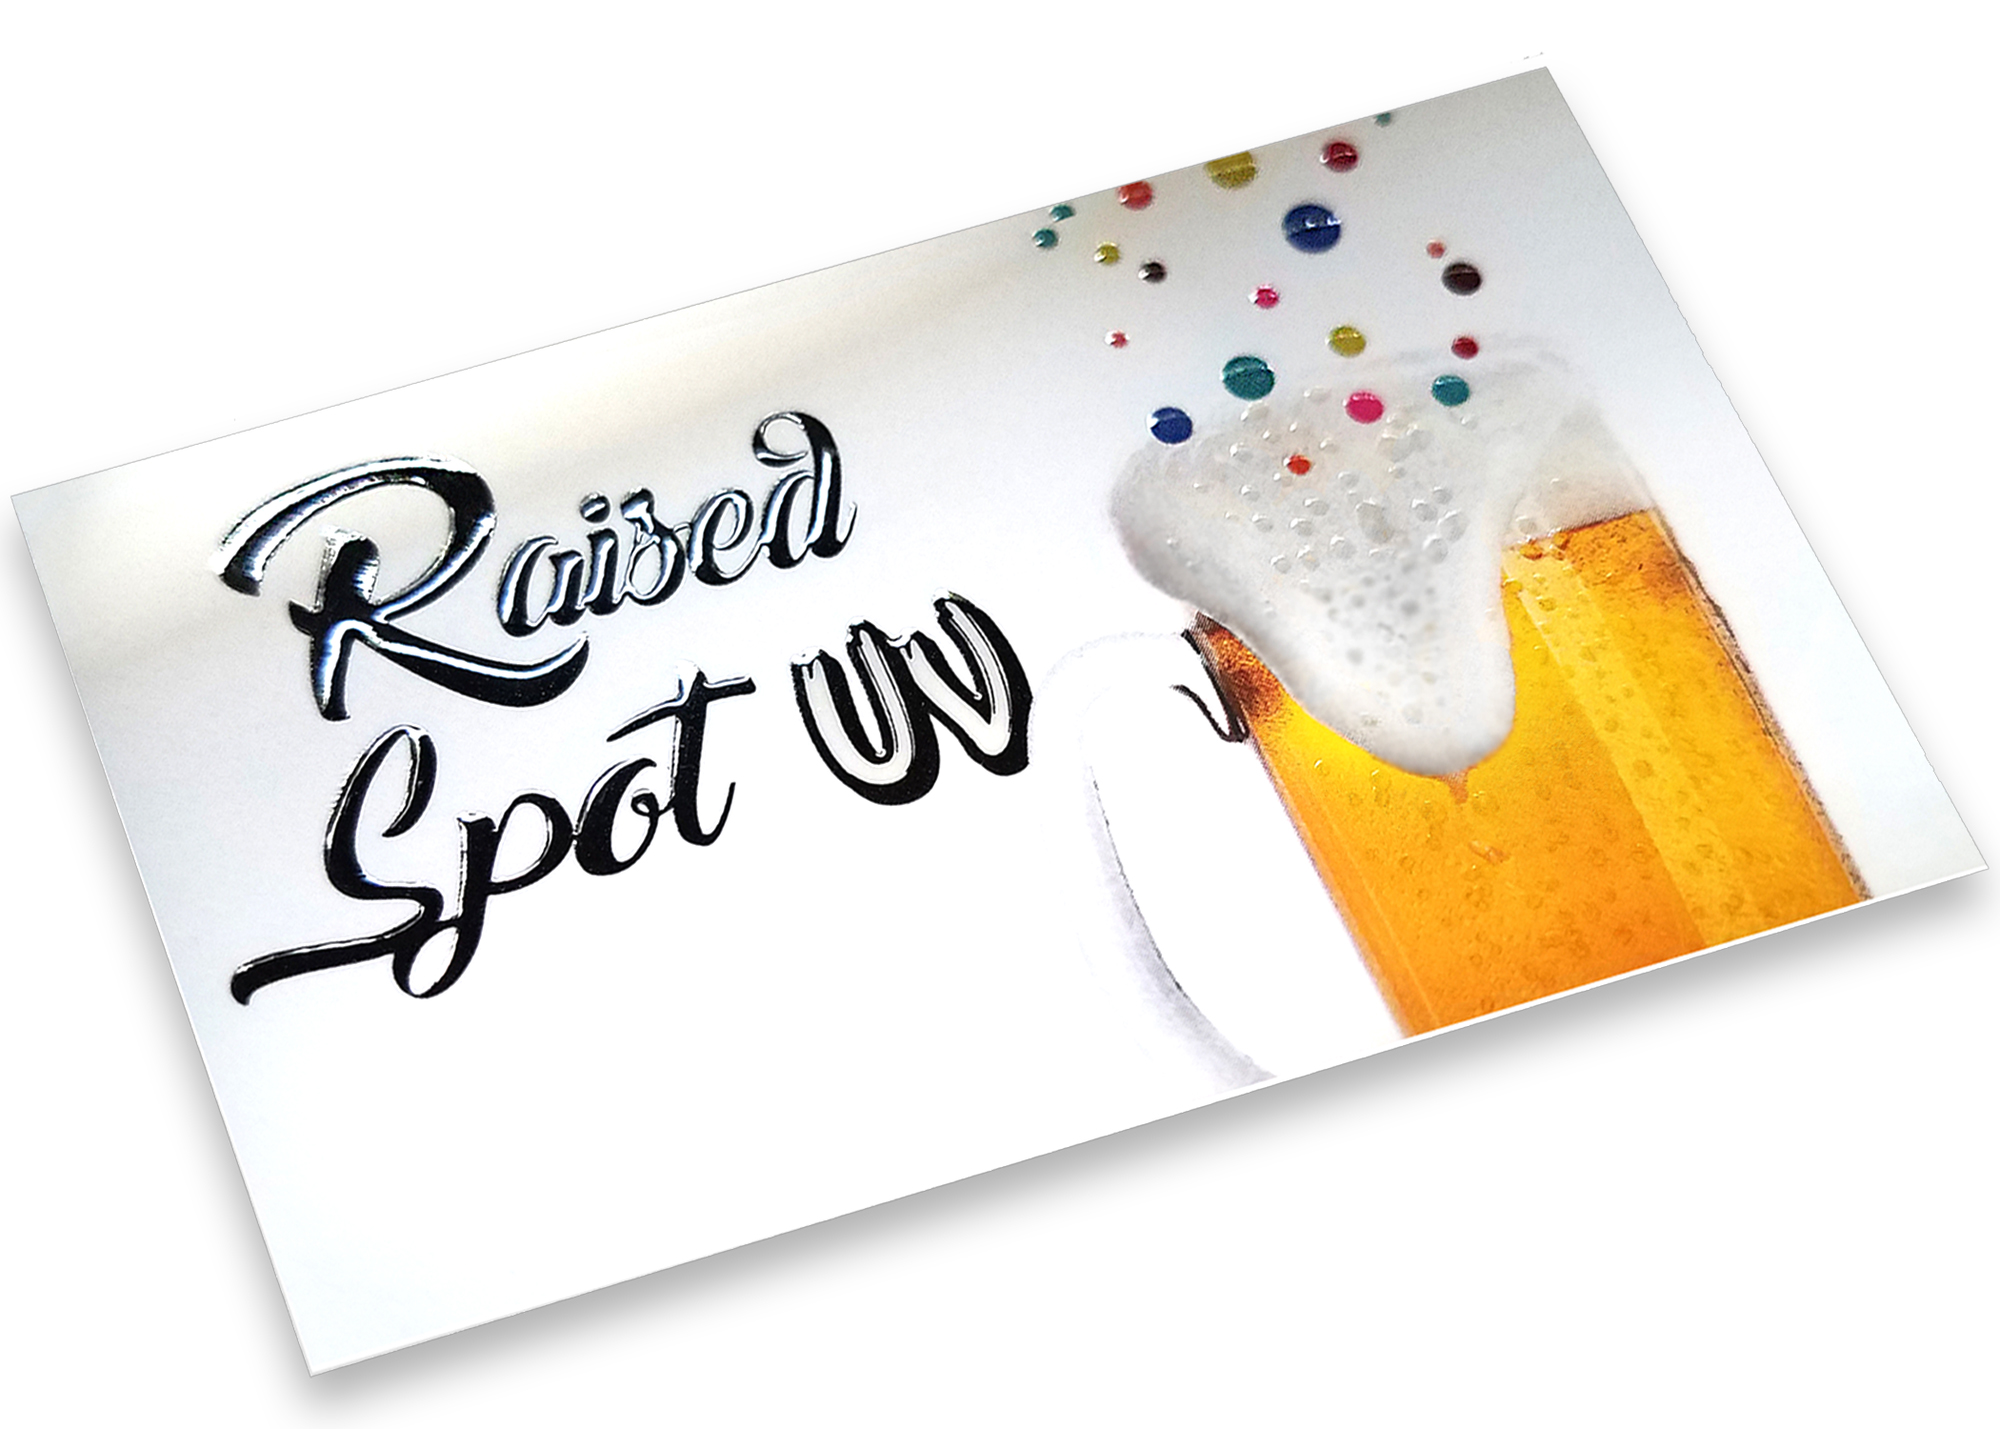 https://k12print.com/images/products_gallery_images/raised_spot_business_card1156.jpg